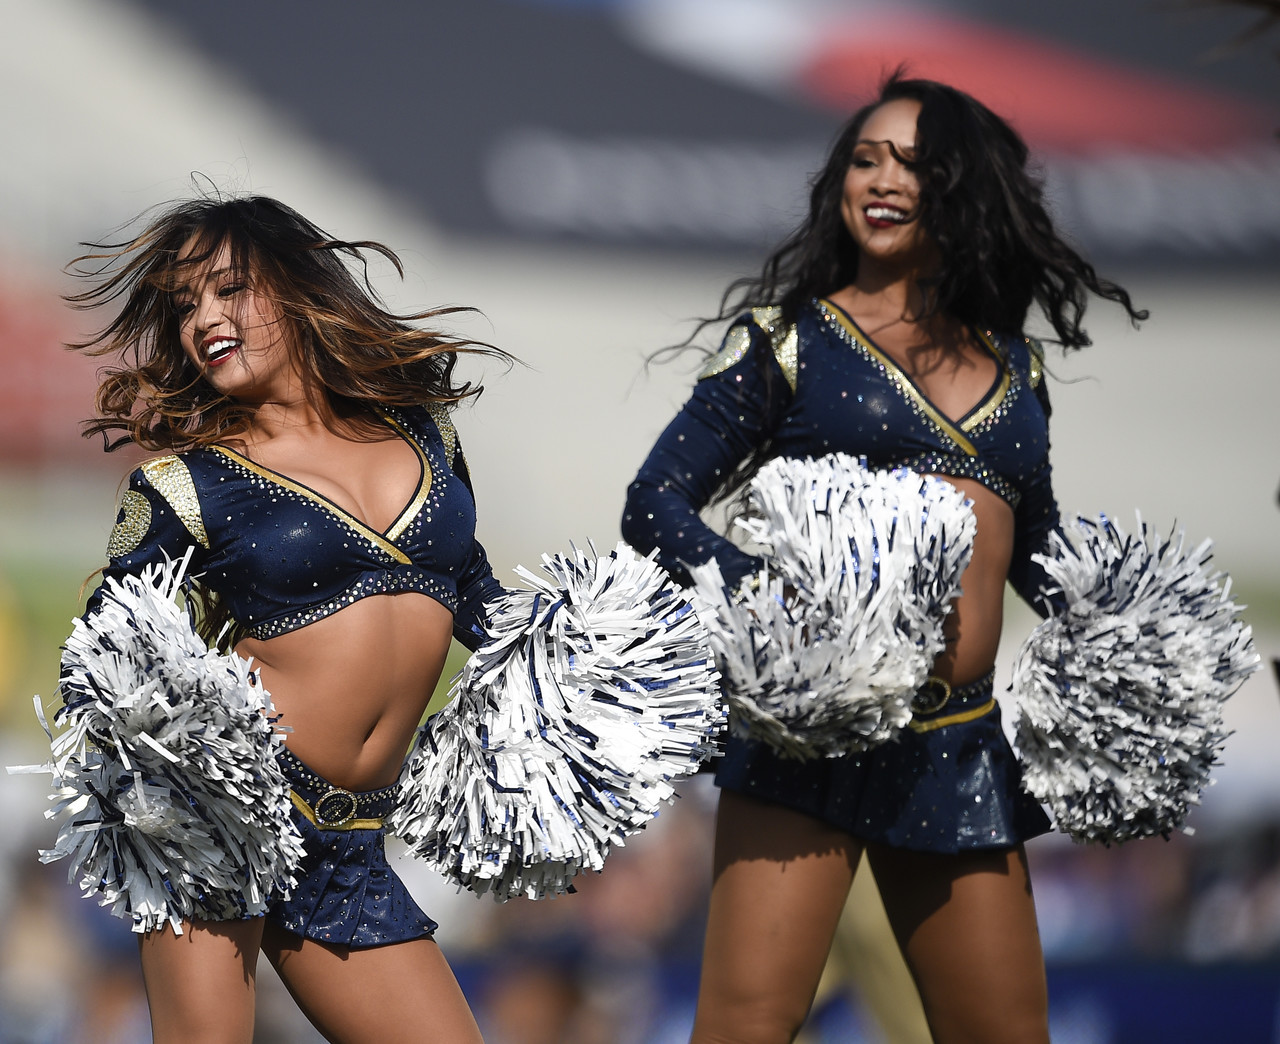 The Chargers' latest program included an embarrassing San Diego gaffe